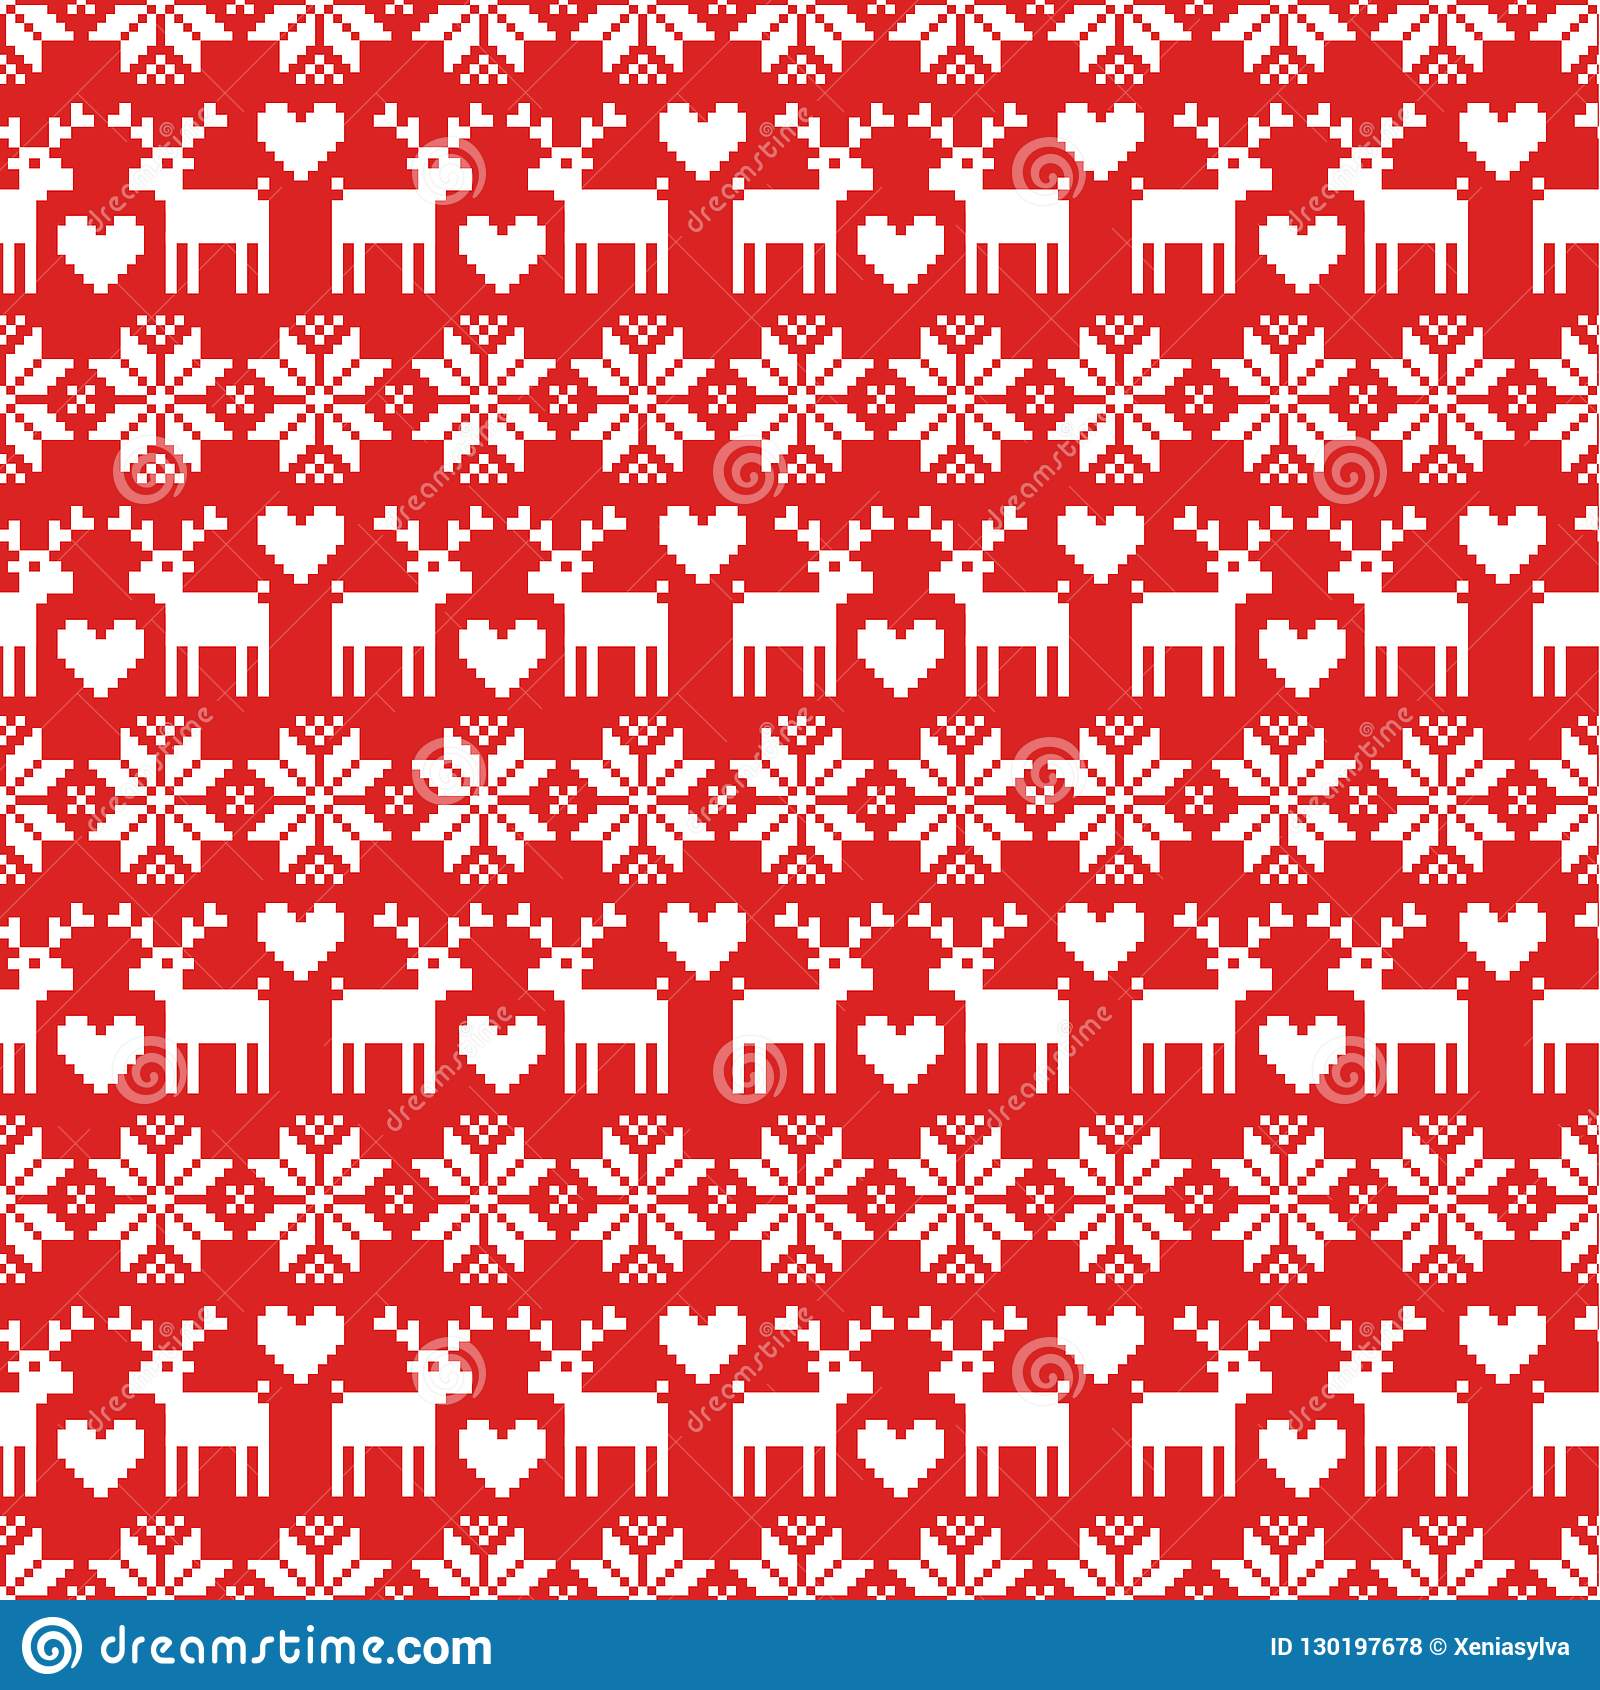 Christmas Sweater Pattern.Vector Seamless Christmas Sweater Pattern With Deers On Red